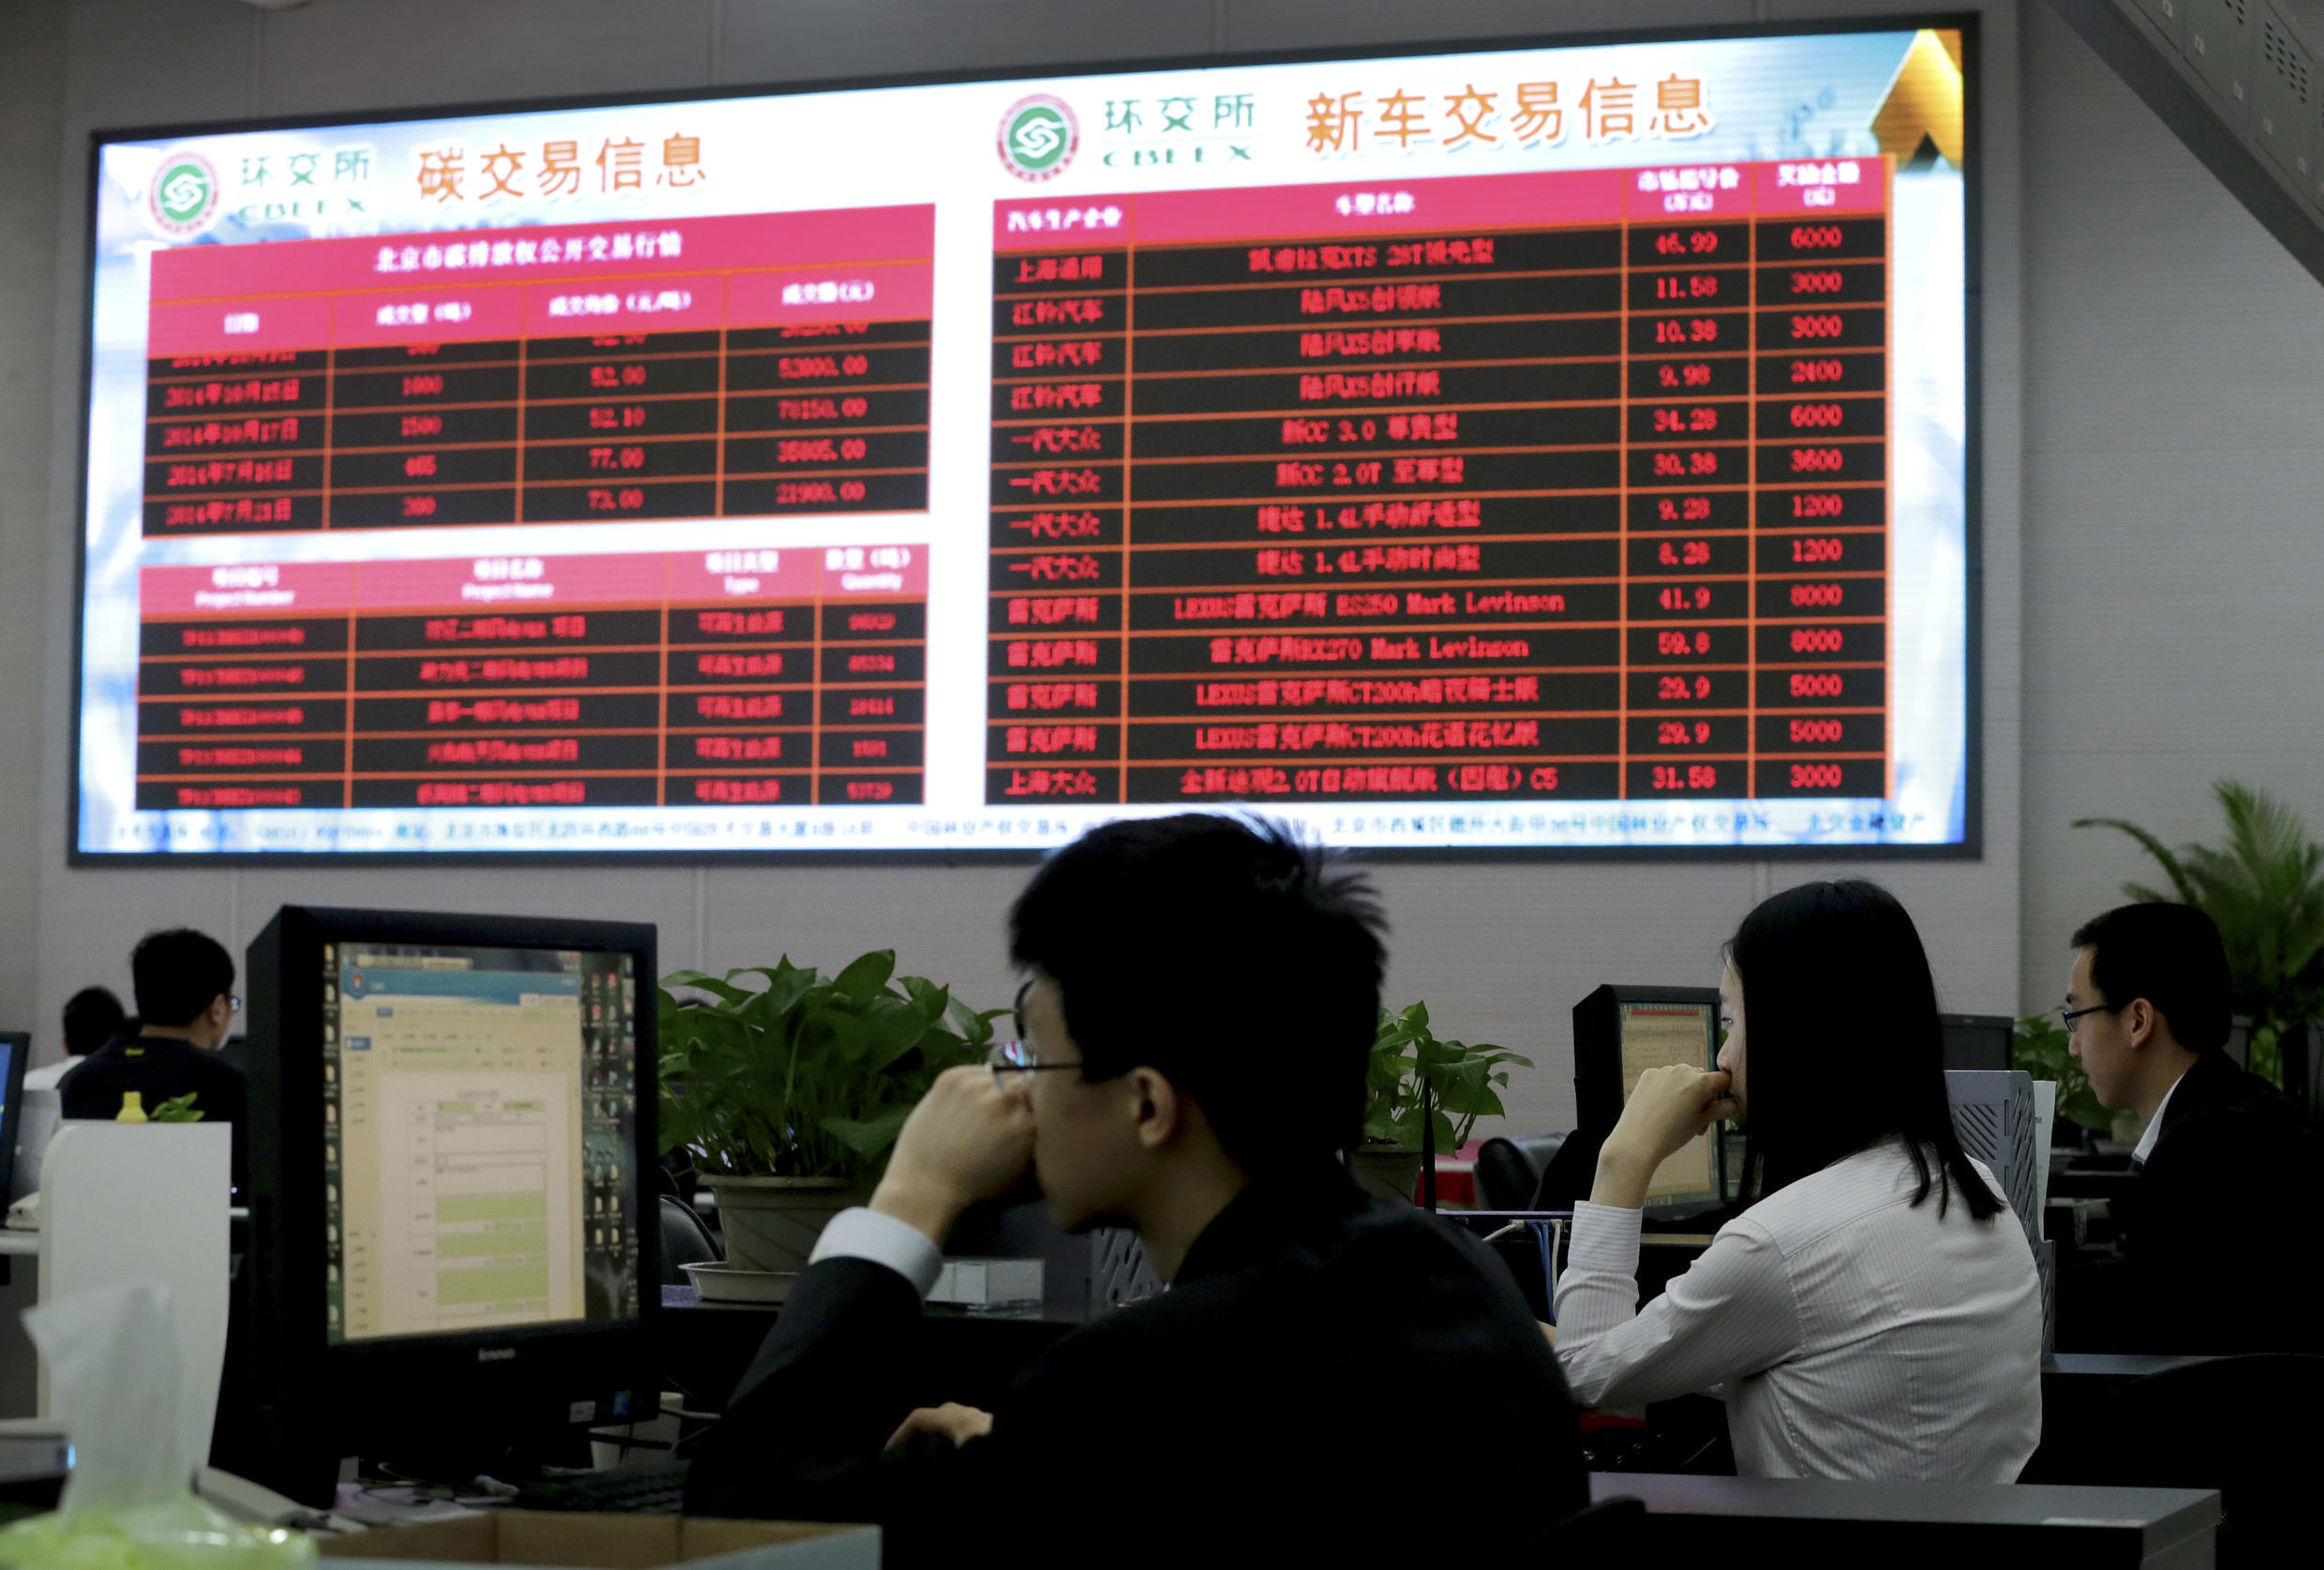 In this May 12, 2015 photo, workers monitor the carbon trading at the Beijing Environmental Exchange office in Beijing, China. With China's greenhouse gas emissions doubling over the past decade, the fate of the world's climate depends on whether China can cut back on the coal-fired power plants, automobiles and other emission sources that have released hundreds of millions of tons of carbon into the atmosphere. With next year's rollout, a successful carbon offset market would clearly play a big part in China's larger plan to rein in emissions. (AP Photo/Andy Wong)